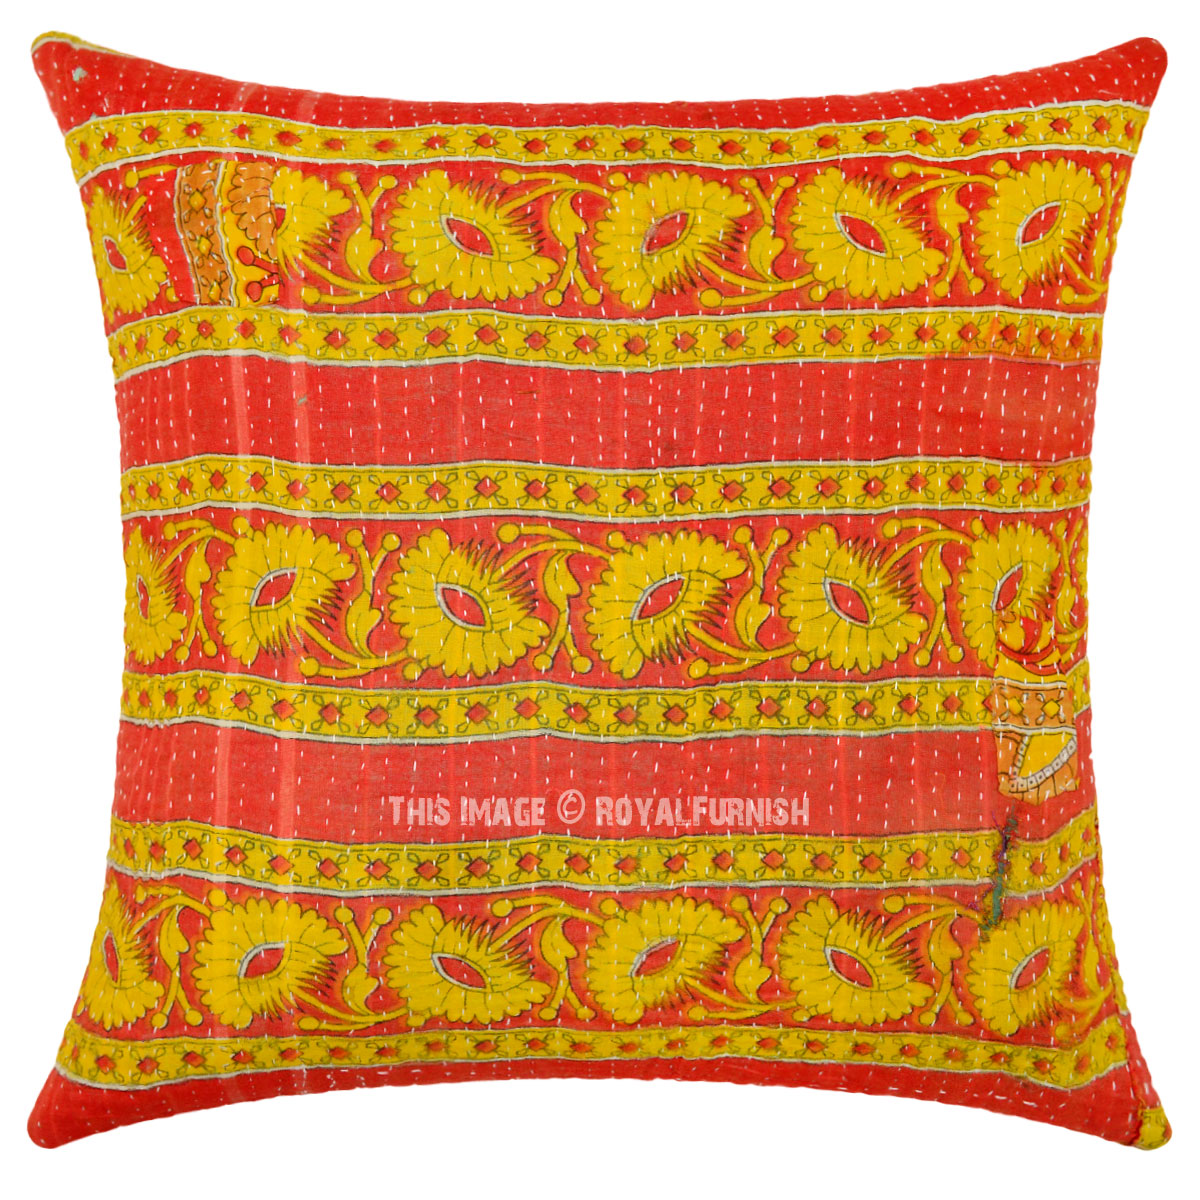 Red And Yellow Decorative Pillows : Red and Yellow Decorative One-Of-A-Kind Vintage Kantha Pillow Case 16X16 - RoyalFurnish.com